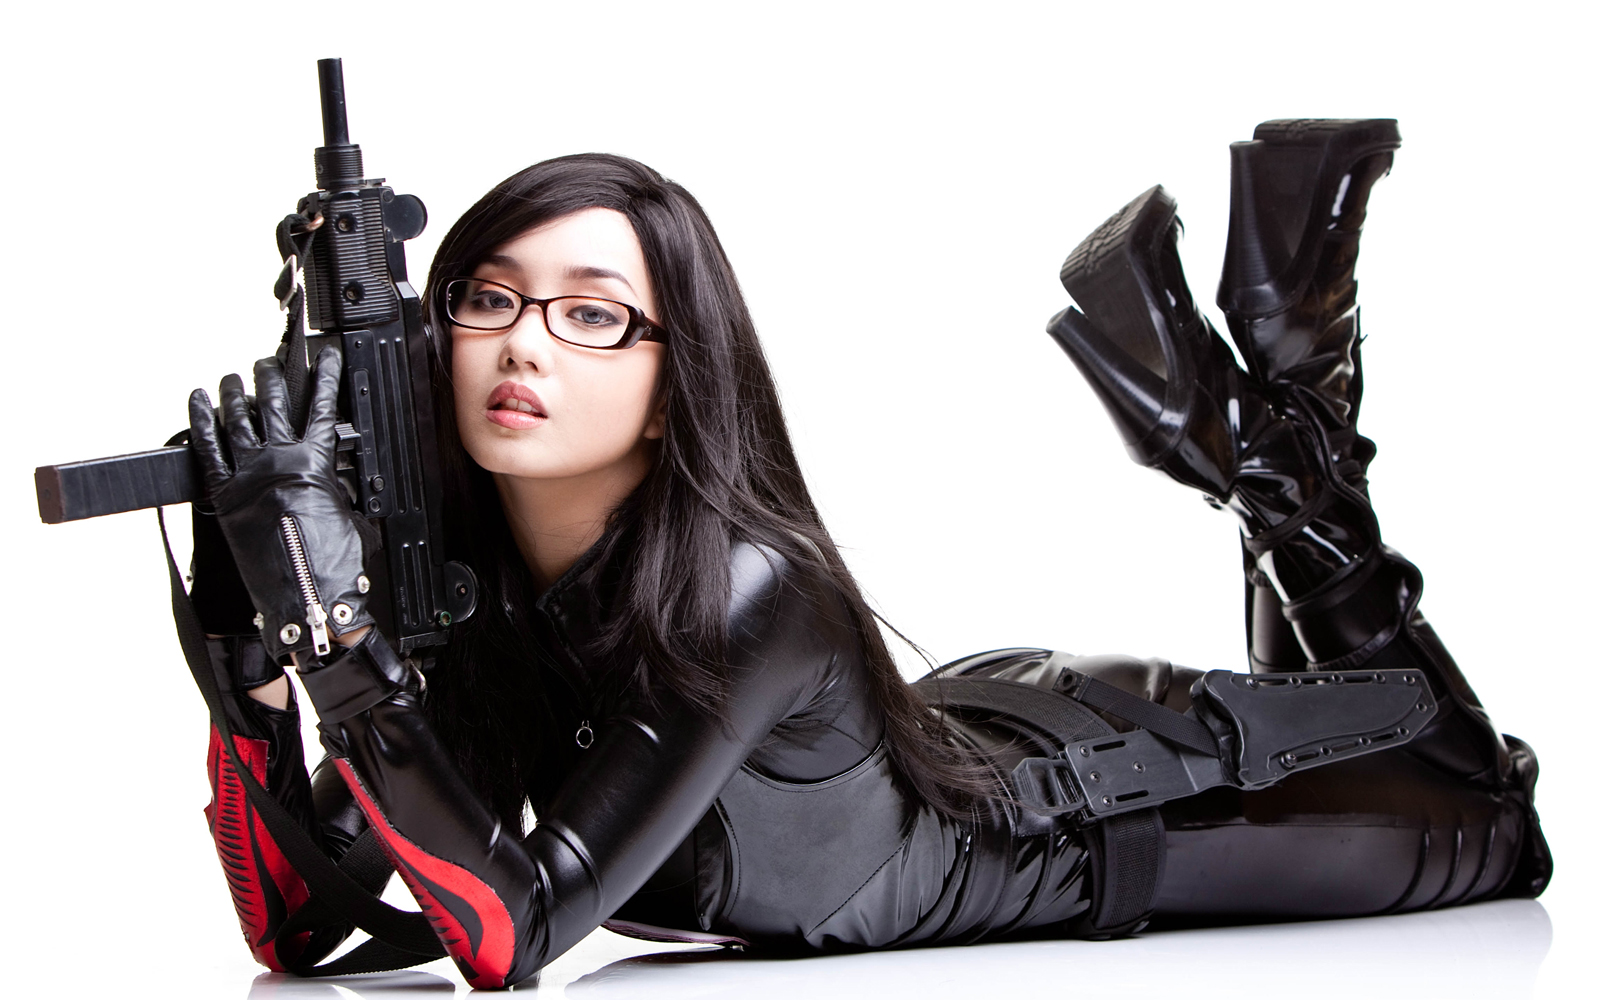 http://1.bp.blogspot.com/-2eUazp0rF4A/Tn-OGjNKIQI/AAAAAAAADTU/nI3ikhDts00/s1600/Uzi_Girls_With_Guns_Asian_Theme_Desktop_Wallpapers_Vvallpaper.net.jpg